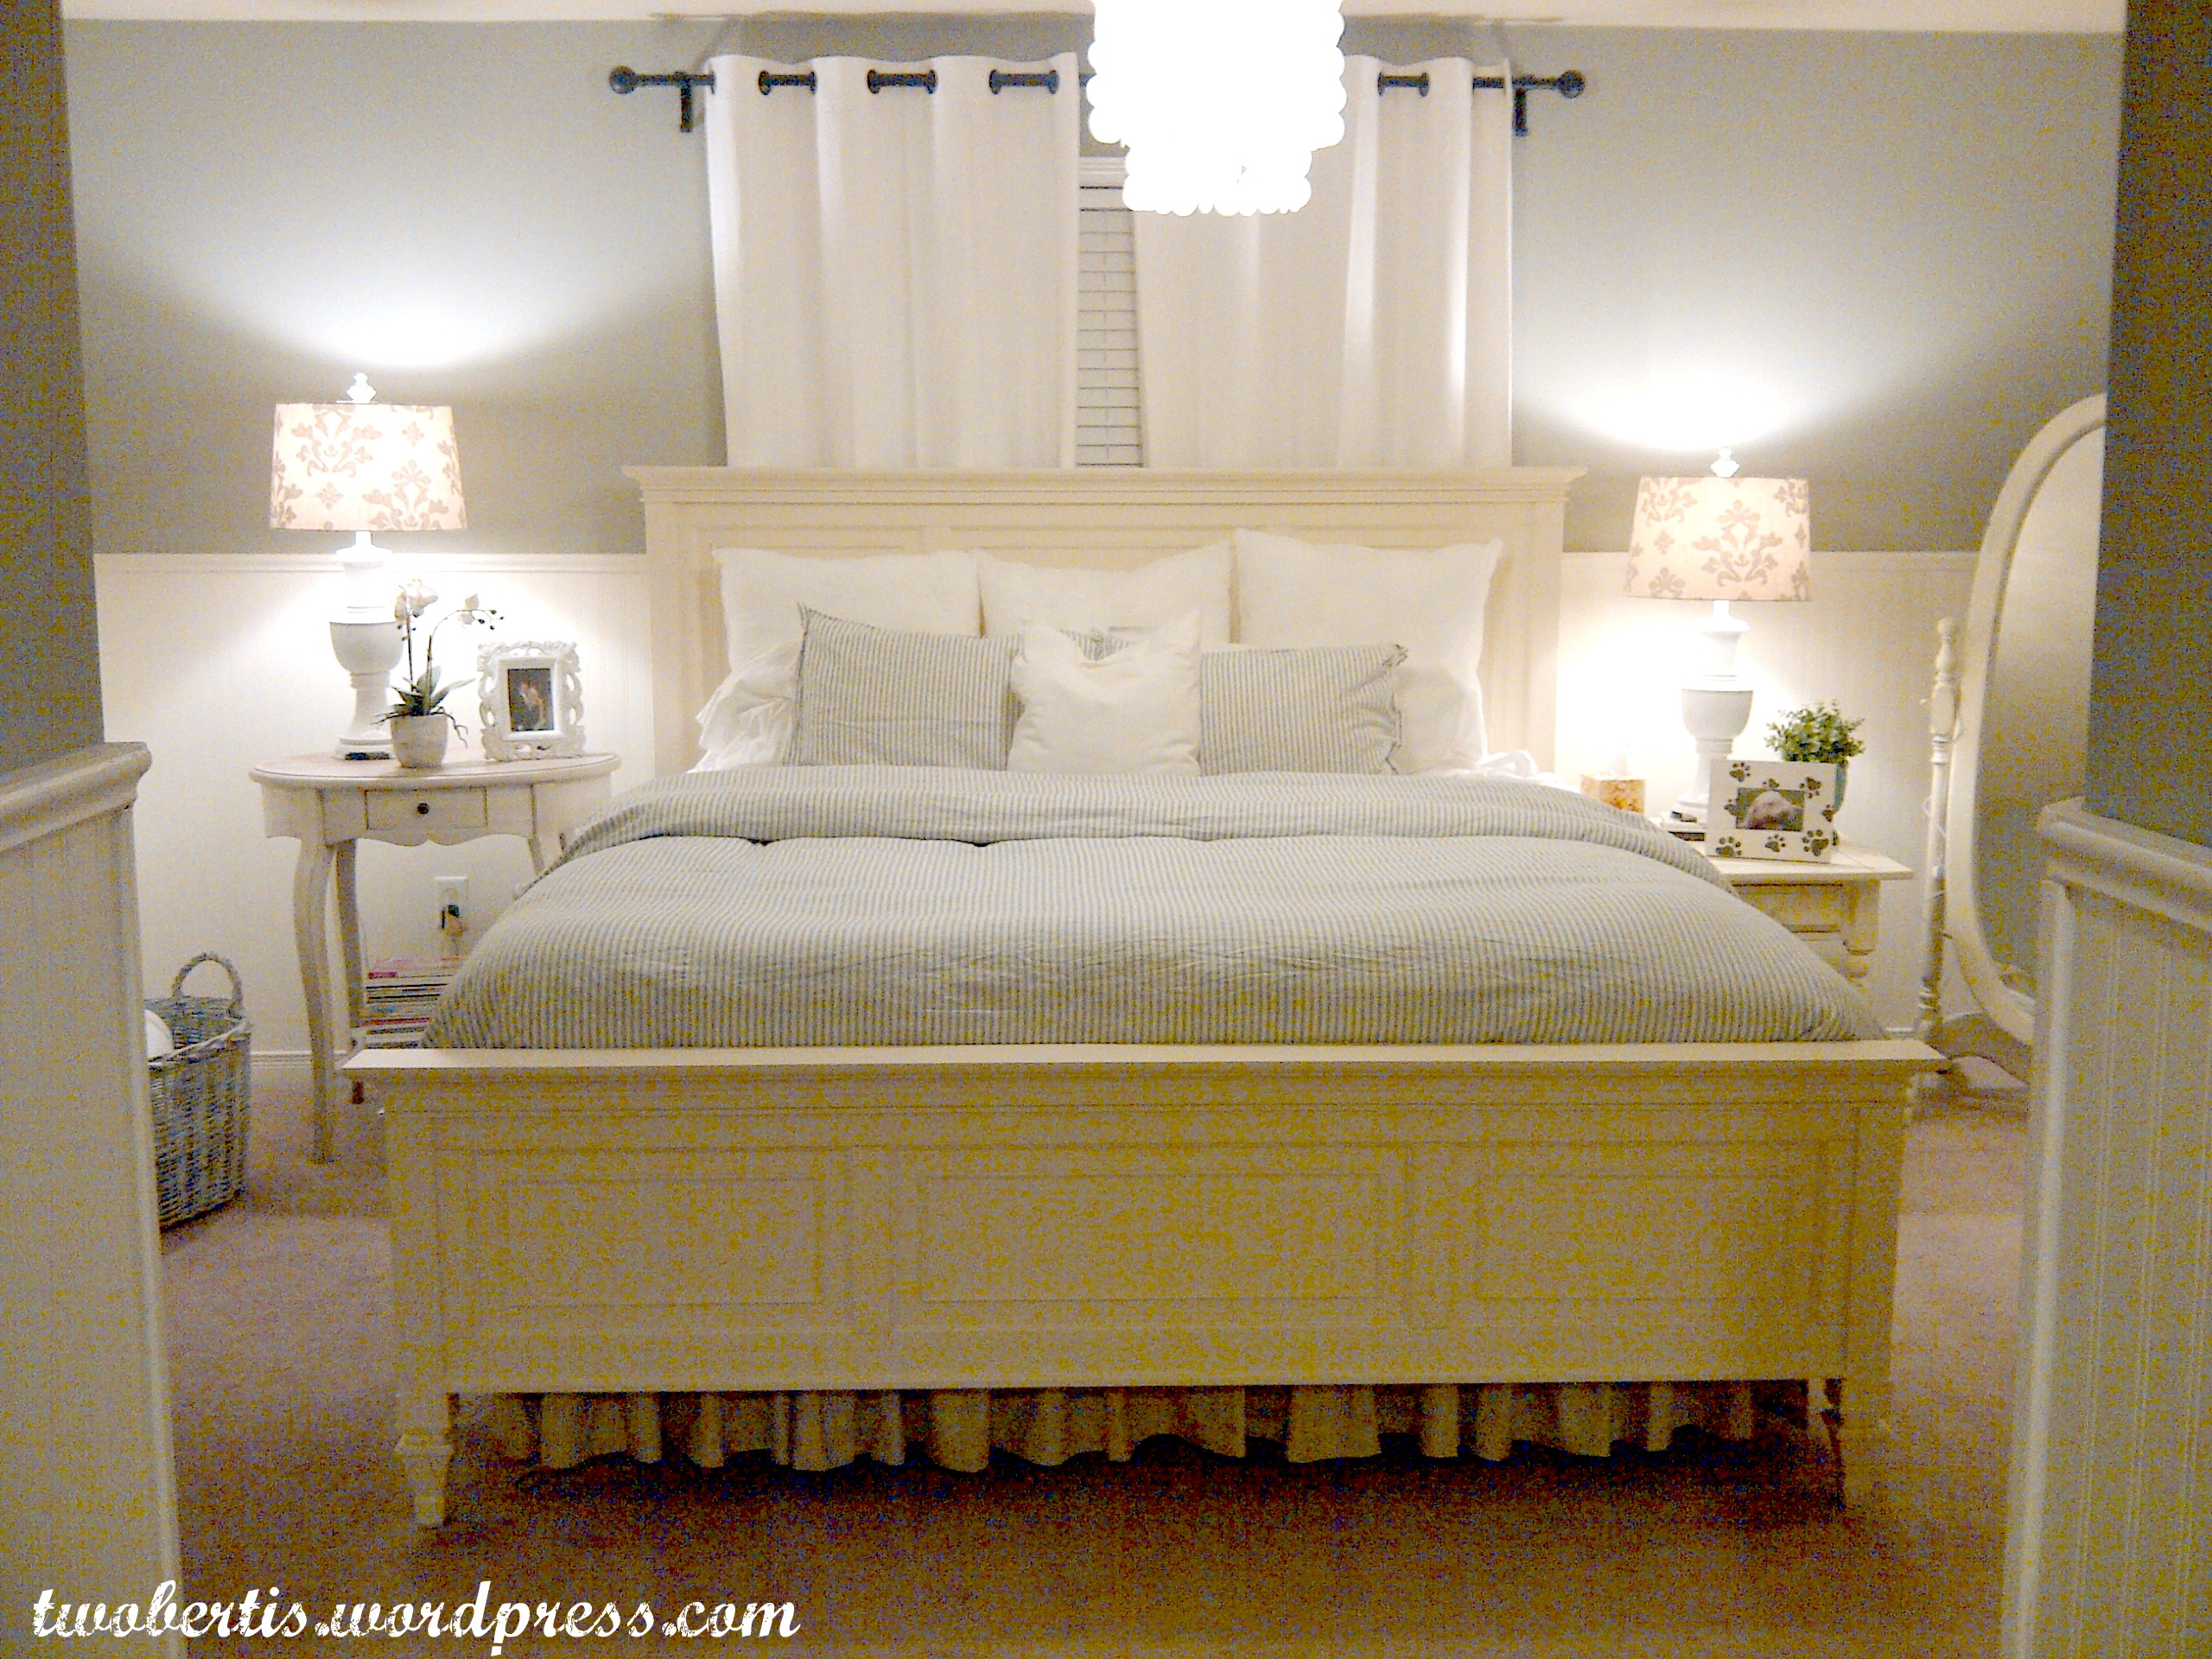 Fullsize Of Pottery Barn Bed